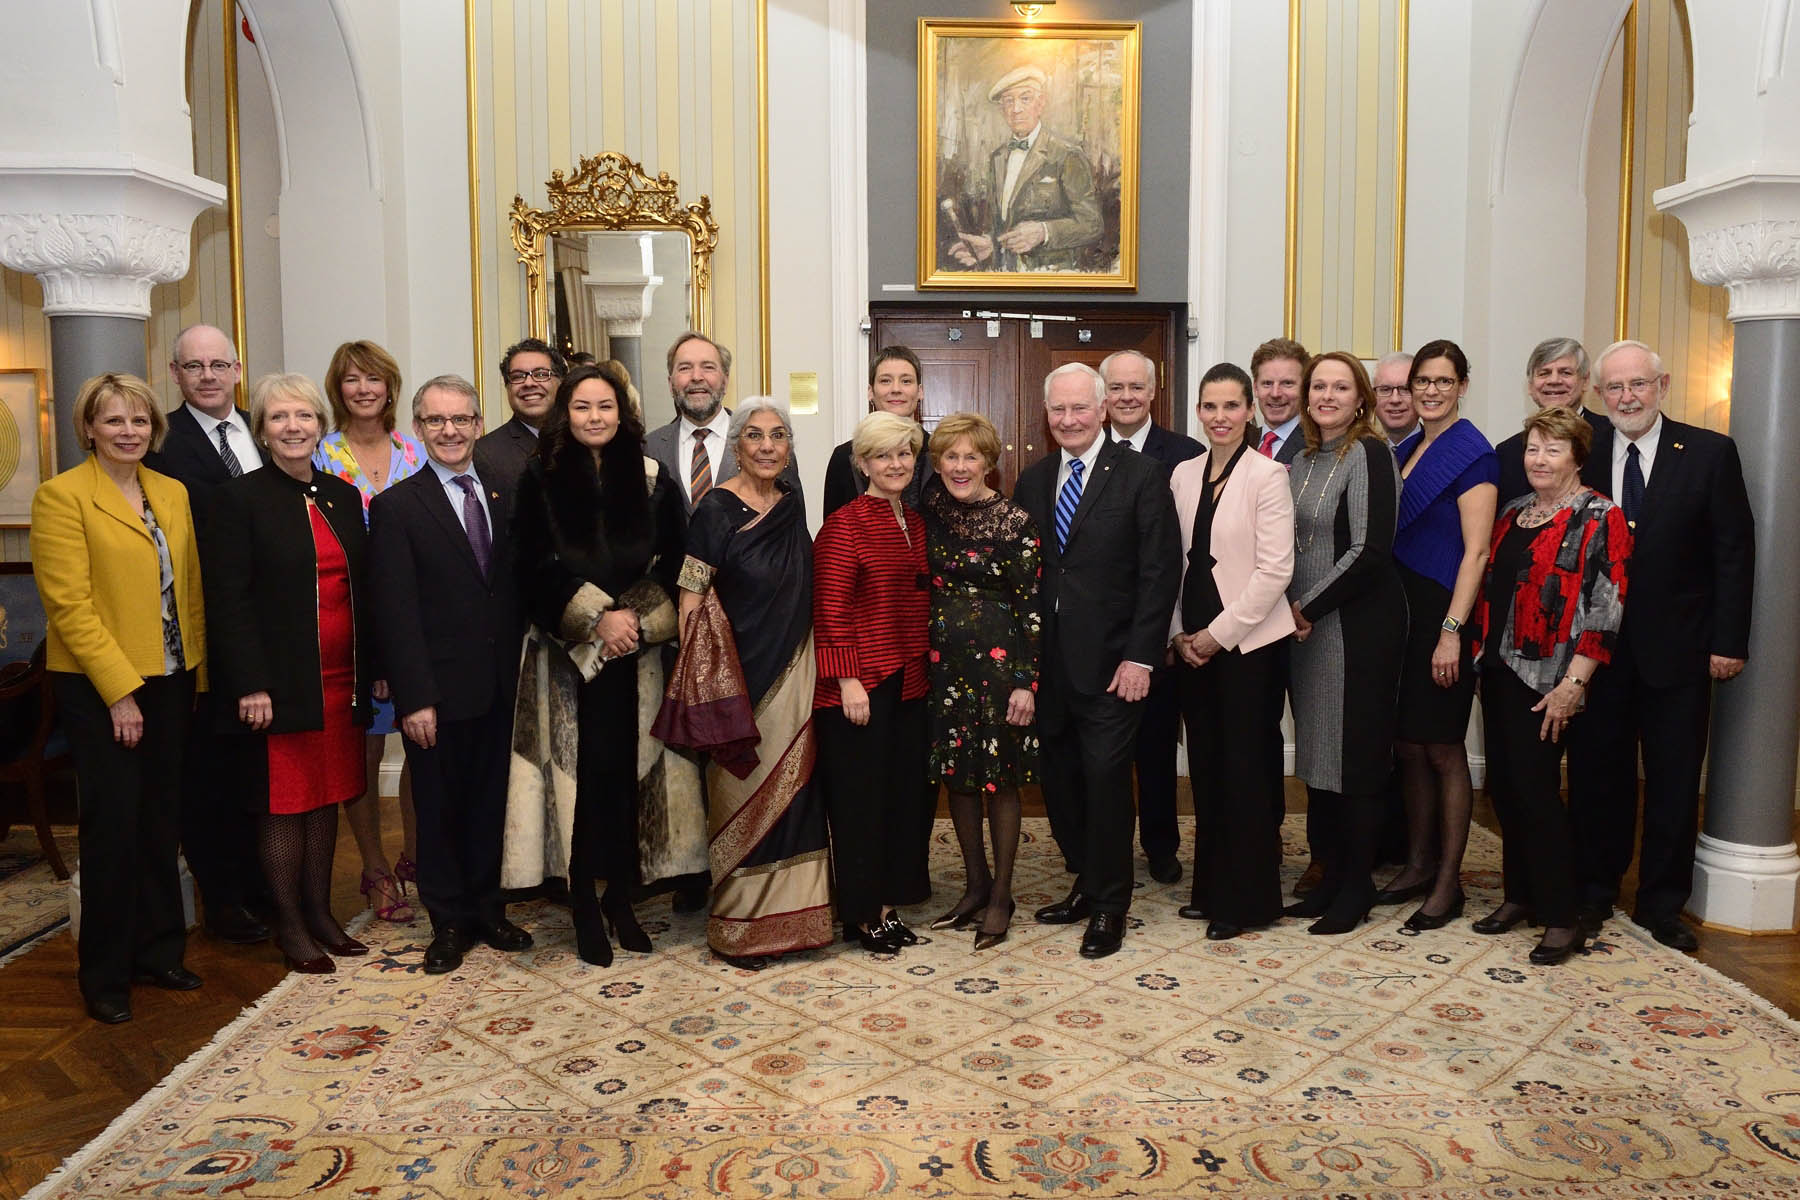 In the afternoon, Their Excellencies and the Canadian delegates gathered to bid farewell to Her Majesty Queen Silvia.